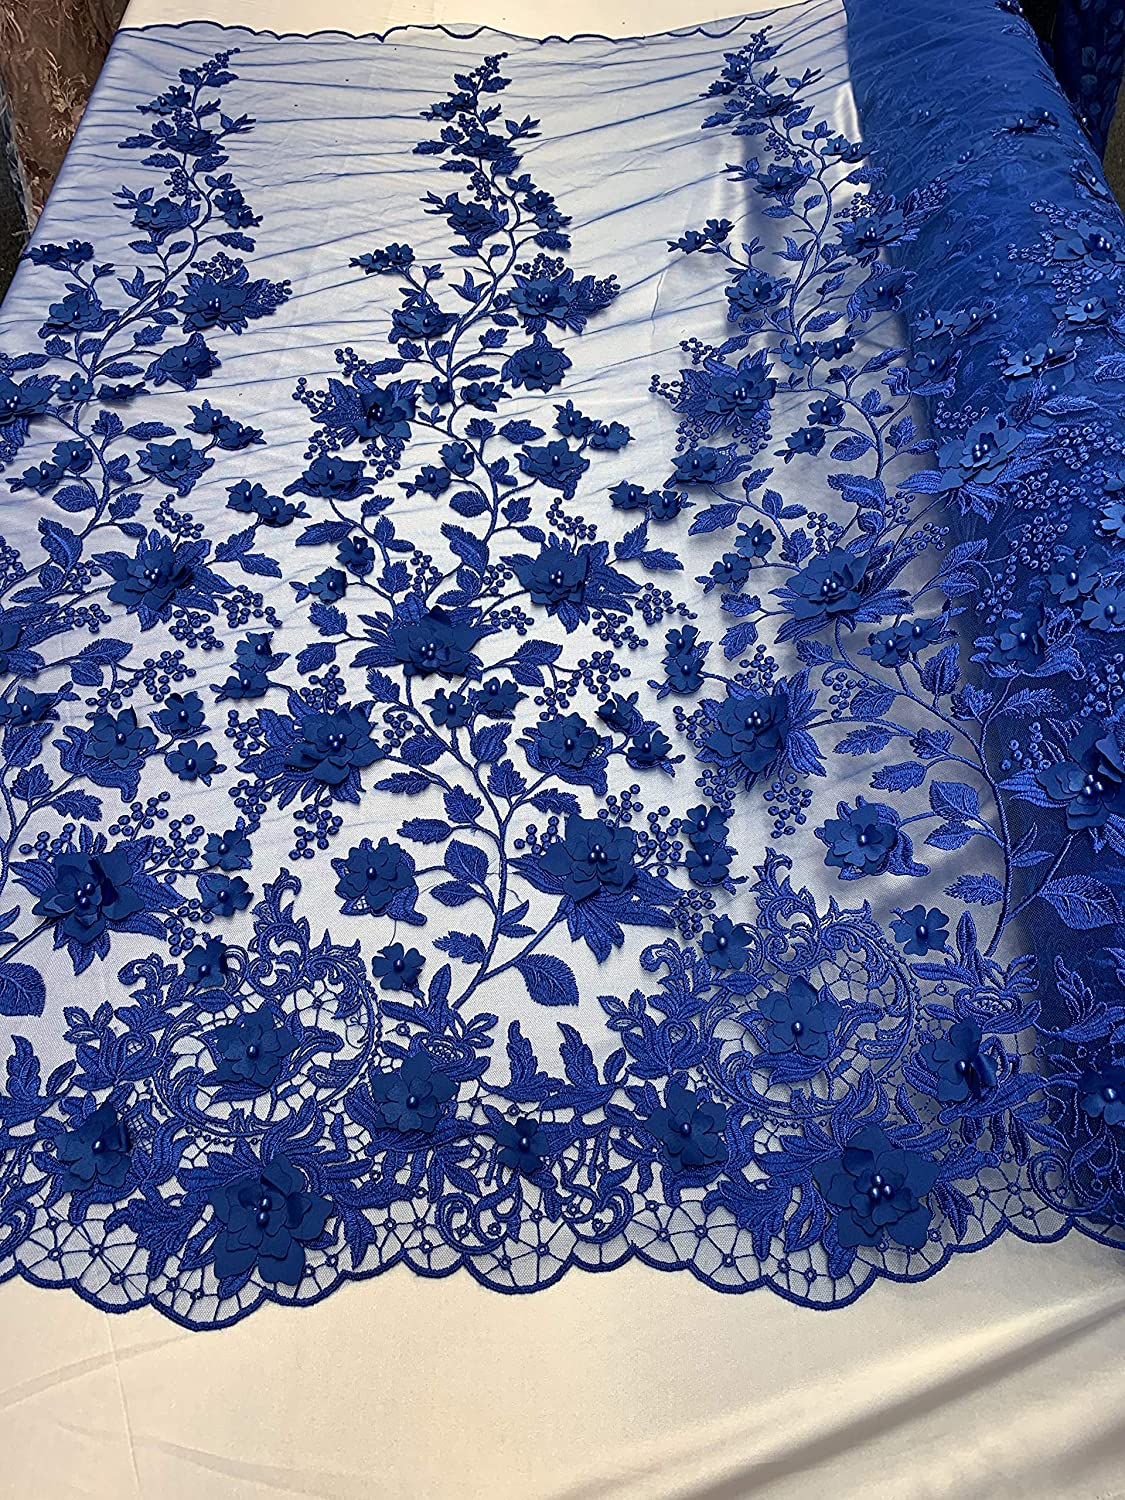 Bridal Lace Fabric 3D Pearls Fabric For Veil Handmand Beaded Lace With Embroidered Flower Wedding Dress Fabric By The Yard